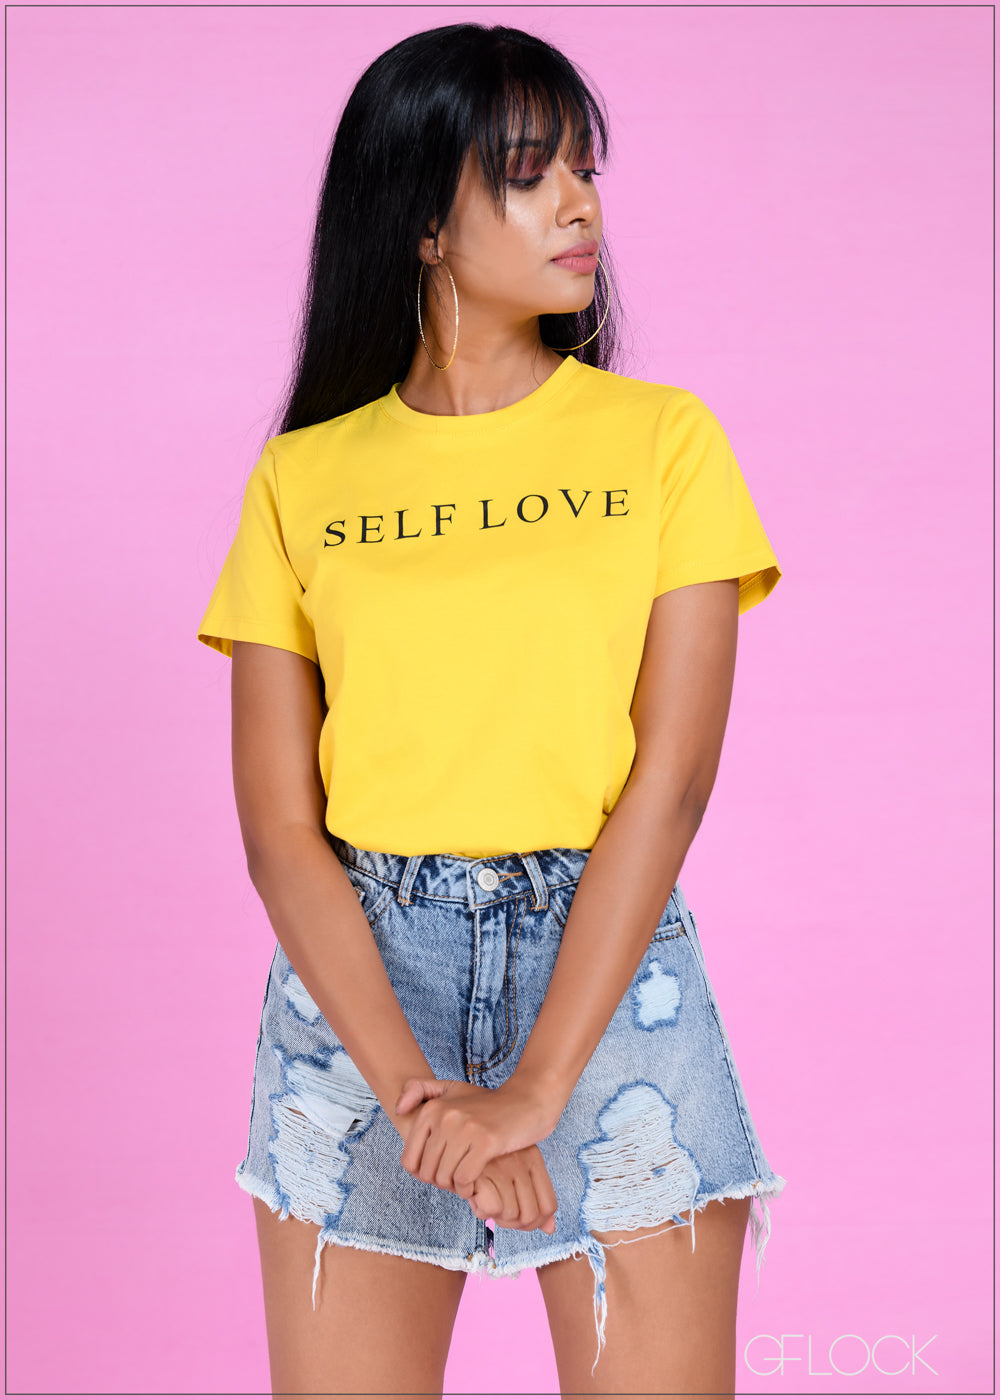 Self Love - Graphic Tee - Knit 1011